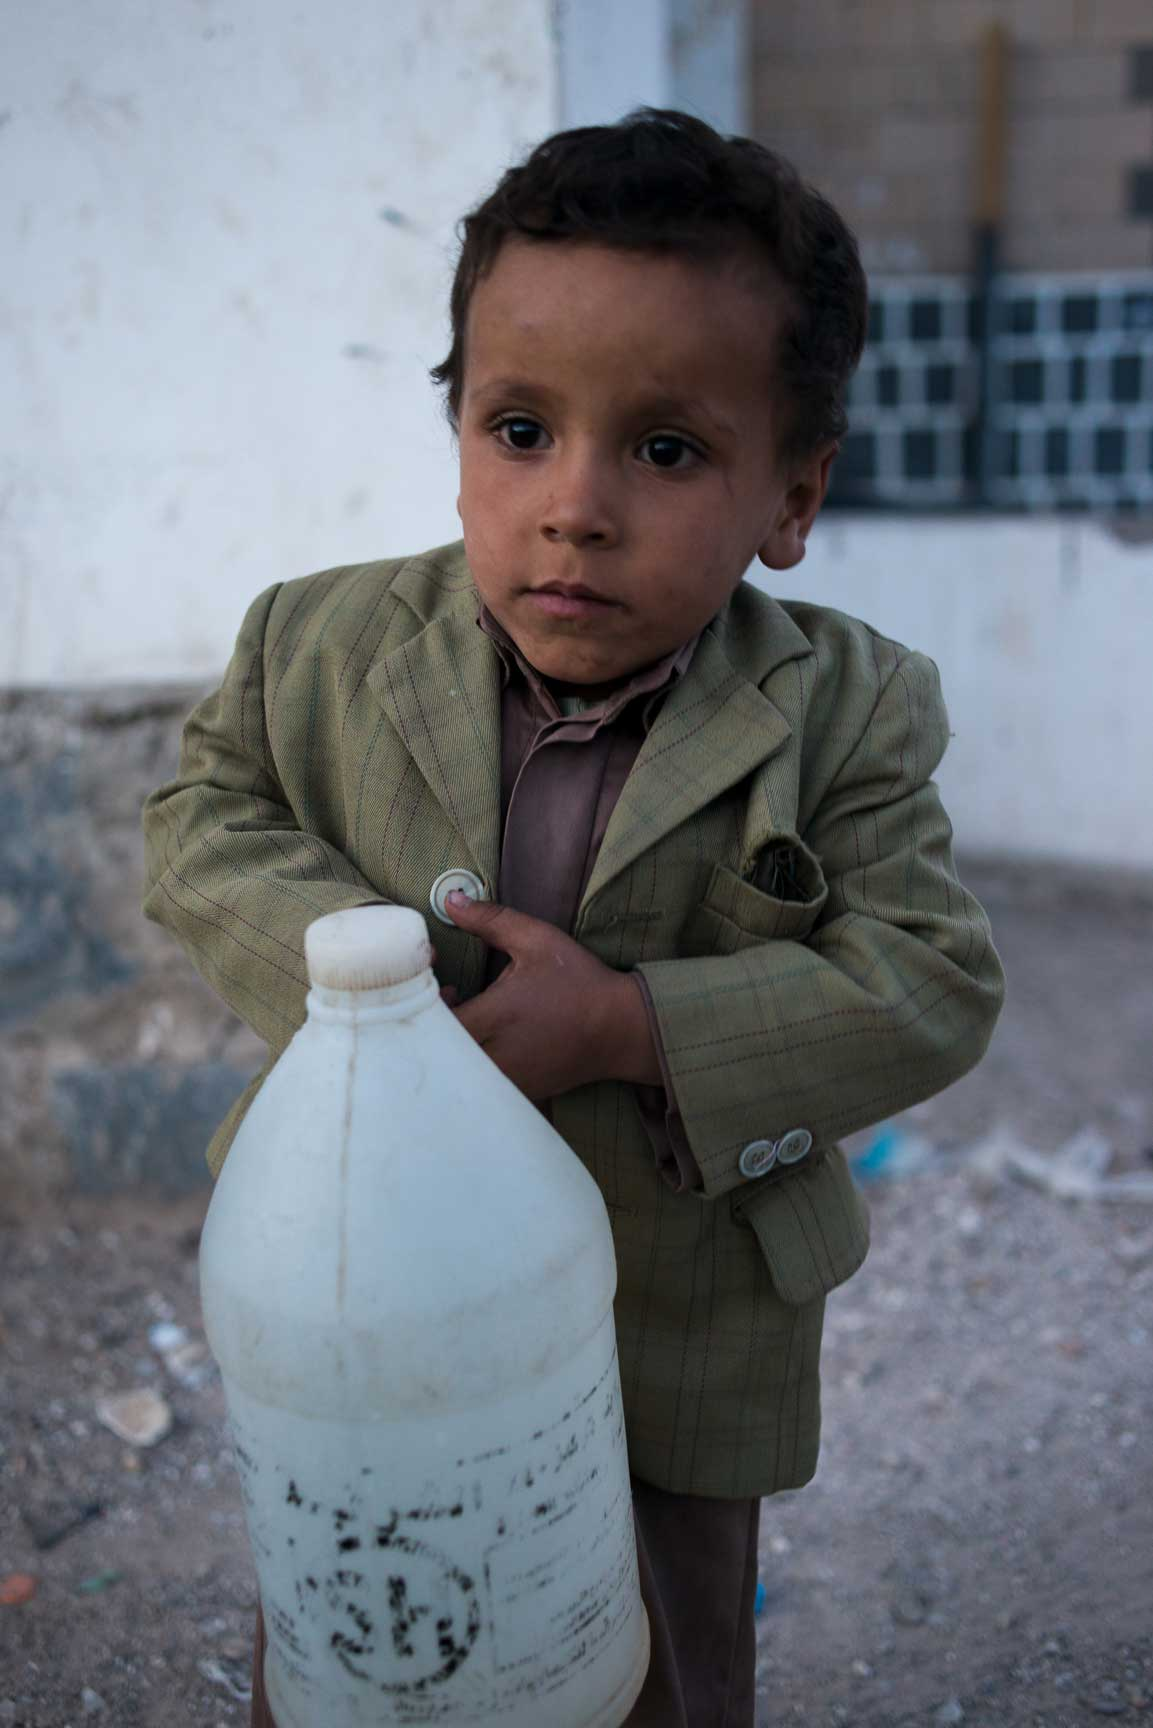 A Yemeni boy stands for a portrait after collecting water from a public tap near a mosque on Tuesday, June 2, 2015 in Sana'a, Yemen. Most homes did not have access to water before the war, and the dry conditions have only been exacerbated by the conflict, as most families cannot afford to purchase trucks that deliver water.